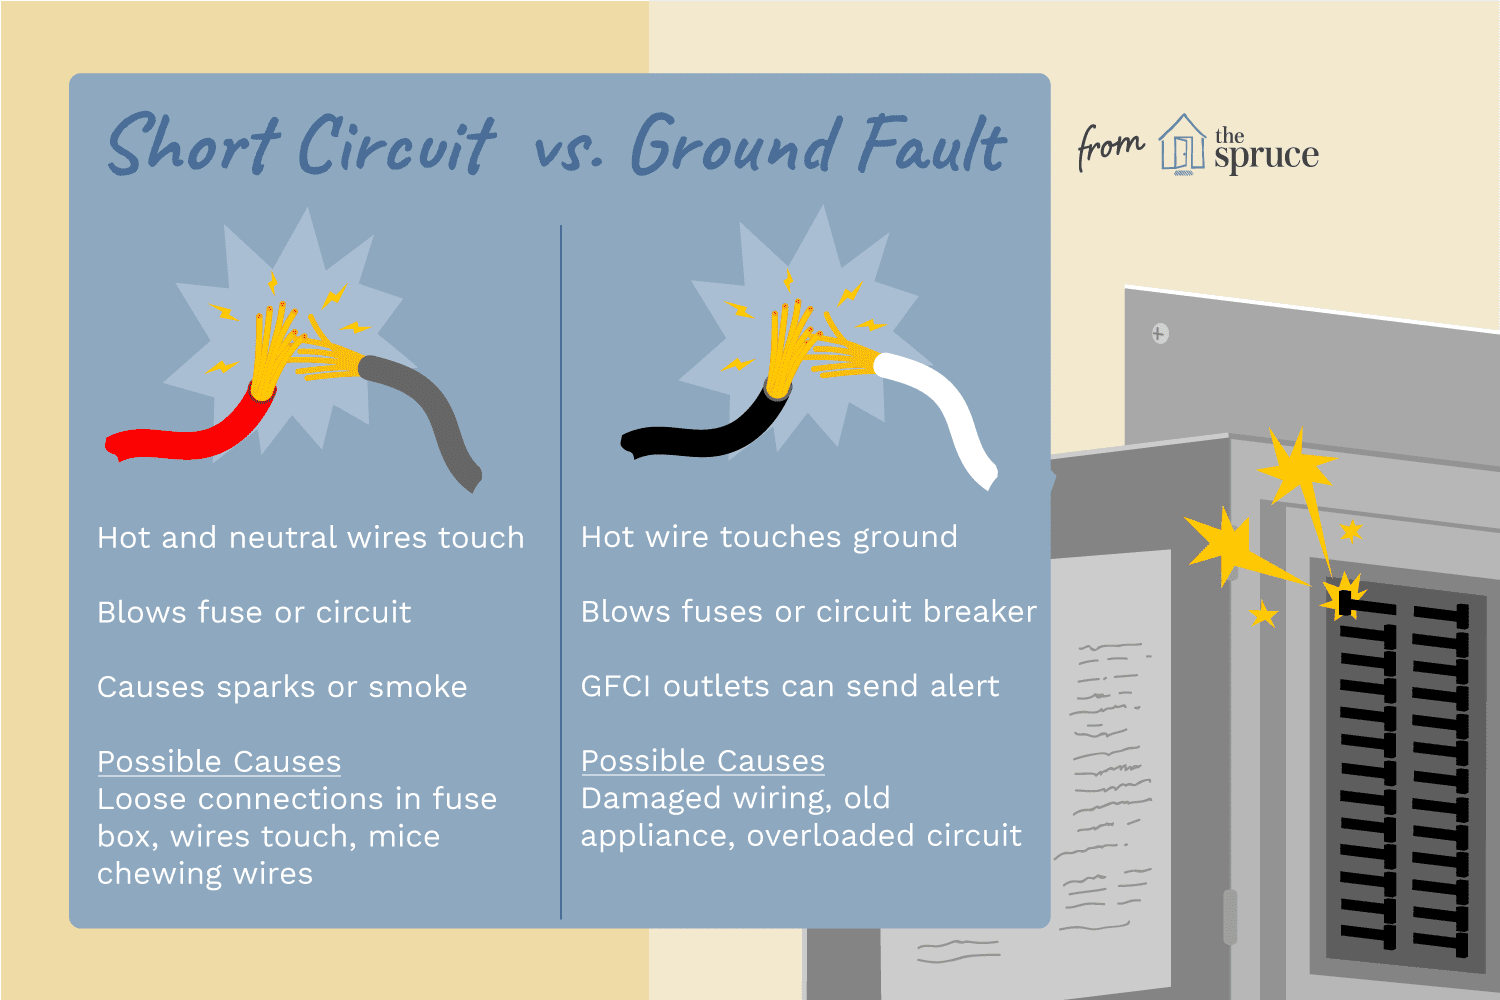 Short Circuit Vs Ground Fault Identification Of Conductors For Both Ac And Dc Circuits Difference